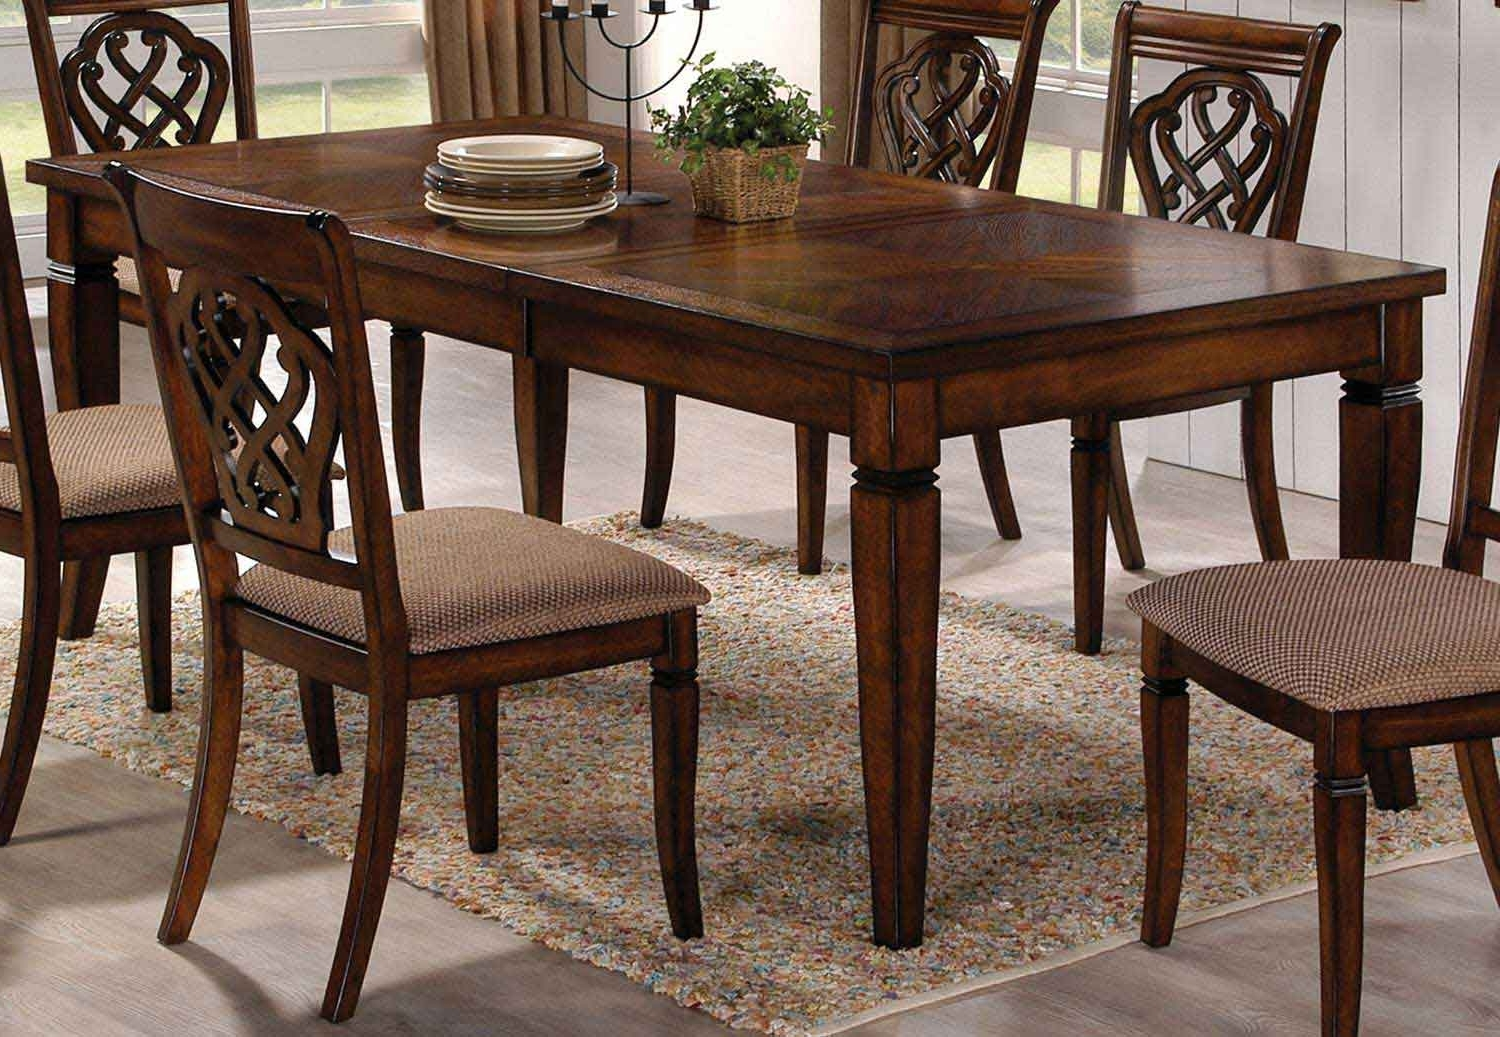 Hayden Dining Tables Pertaining To Trendy Coaster Hayden Dining Table – Oak 103391 At Homelement (View 11 of 25)